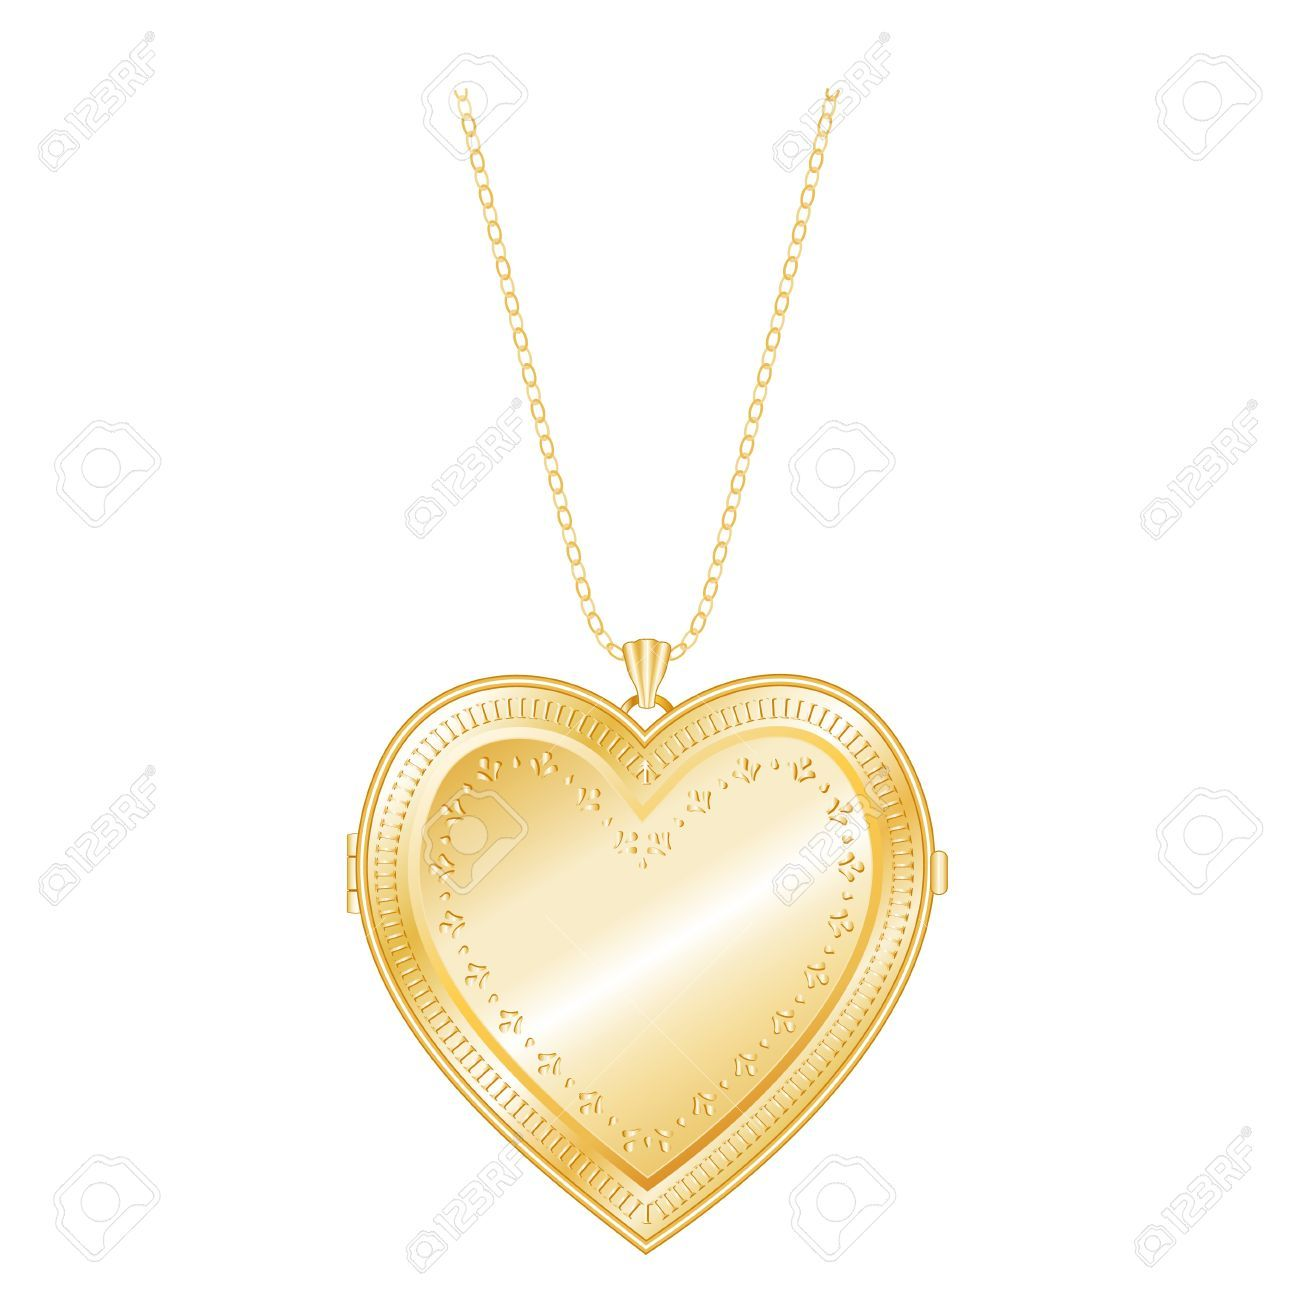 Heart locket clipart 6 » Clipart Portal.